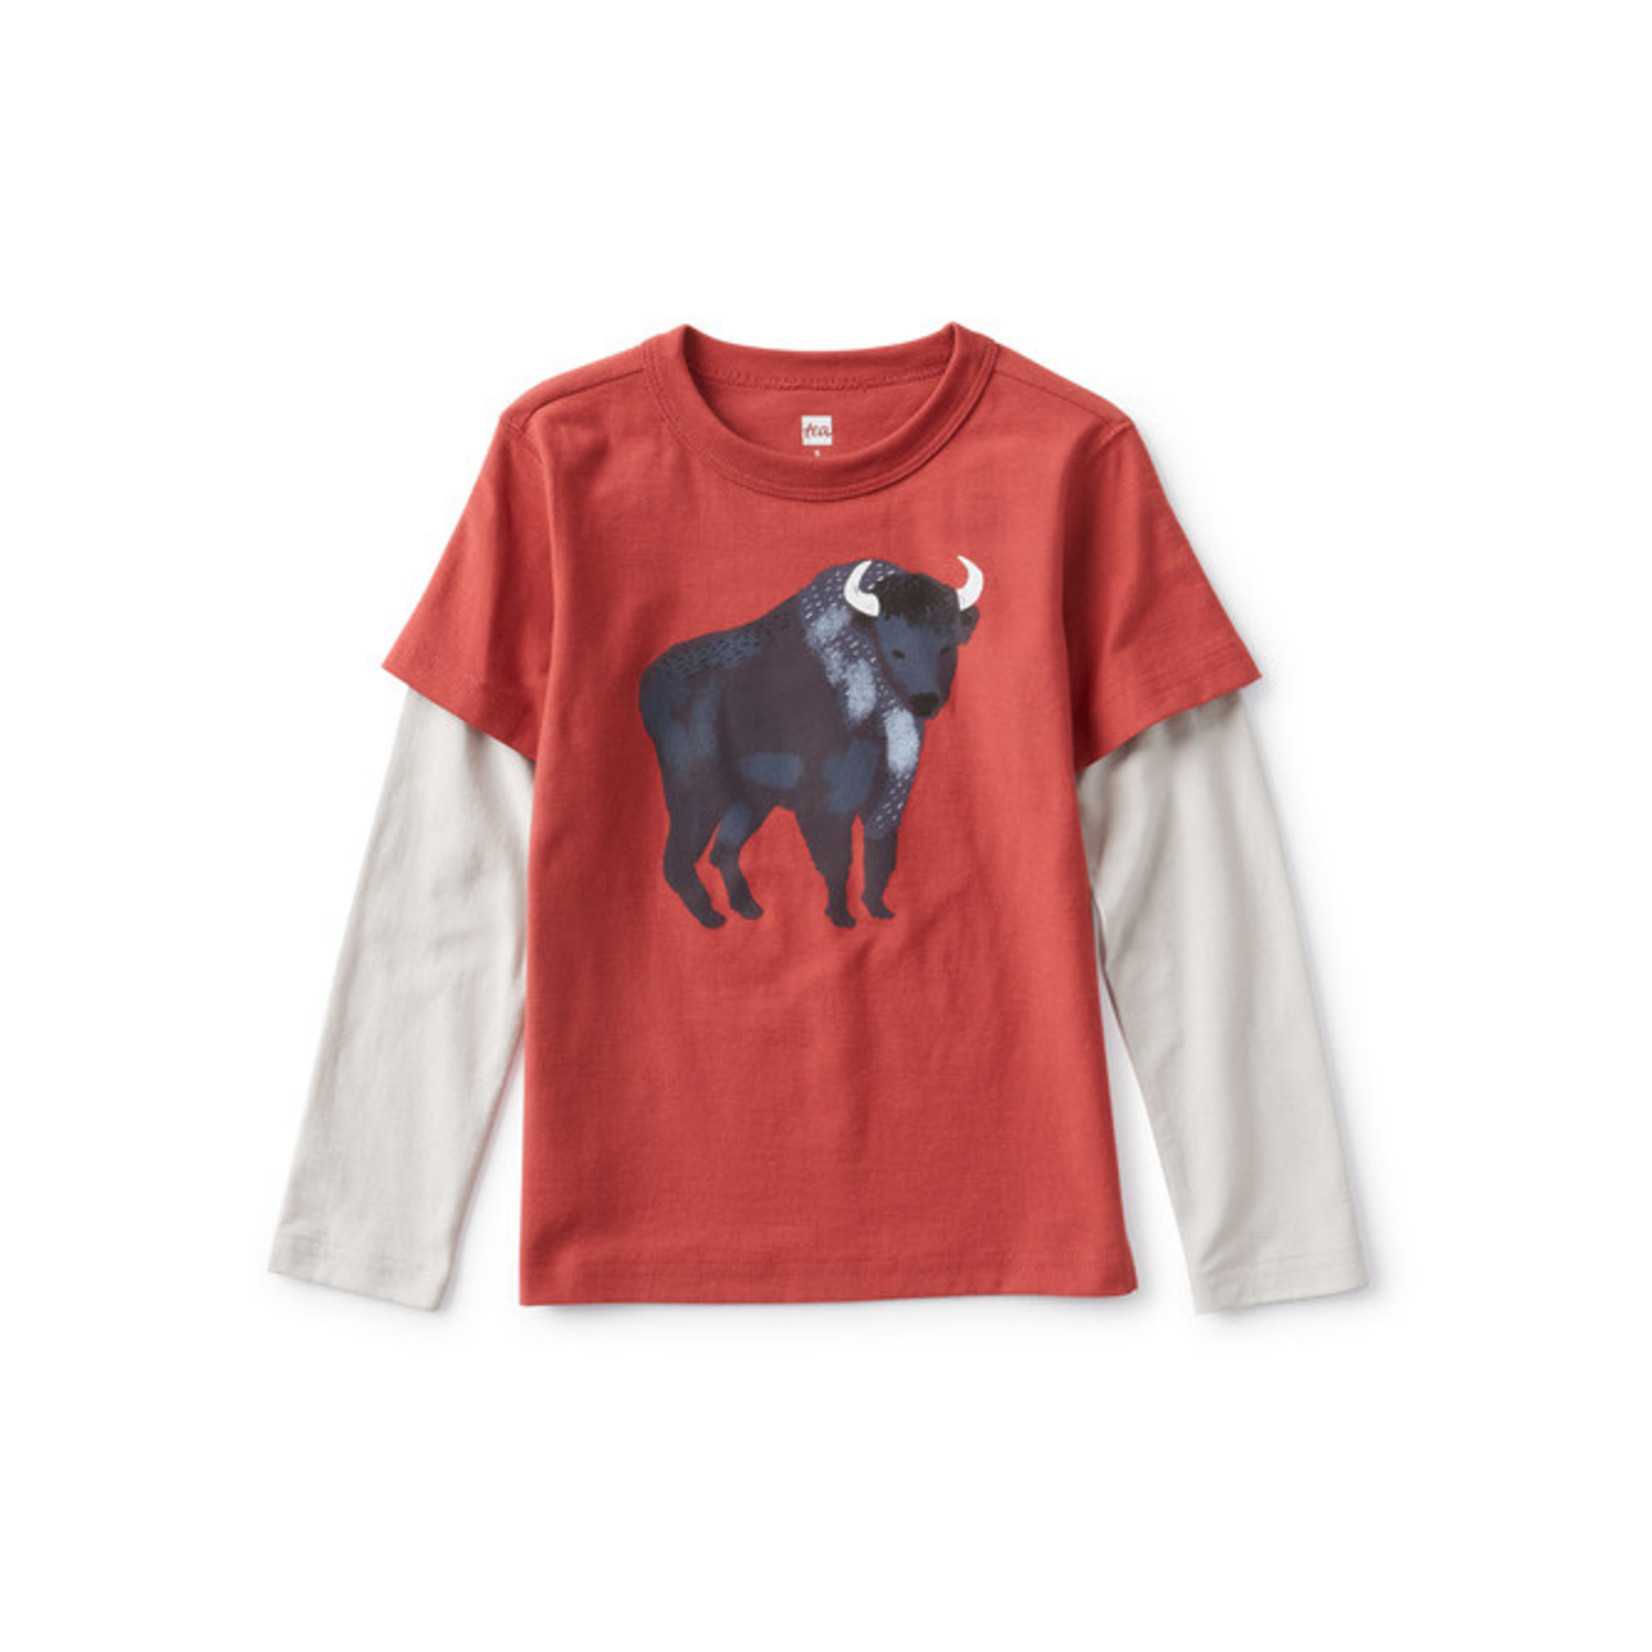 Tea Collection Bison Layered Sleeve Graphic Tee - Earth Red